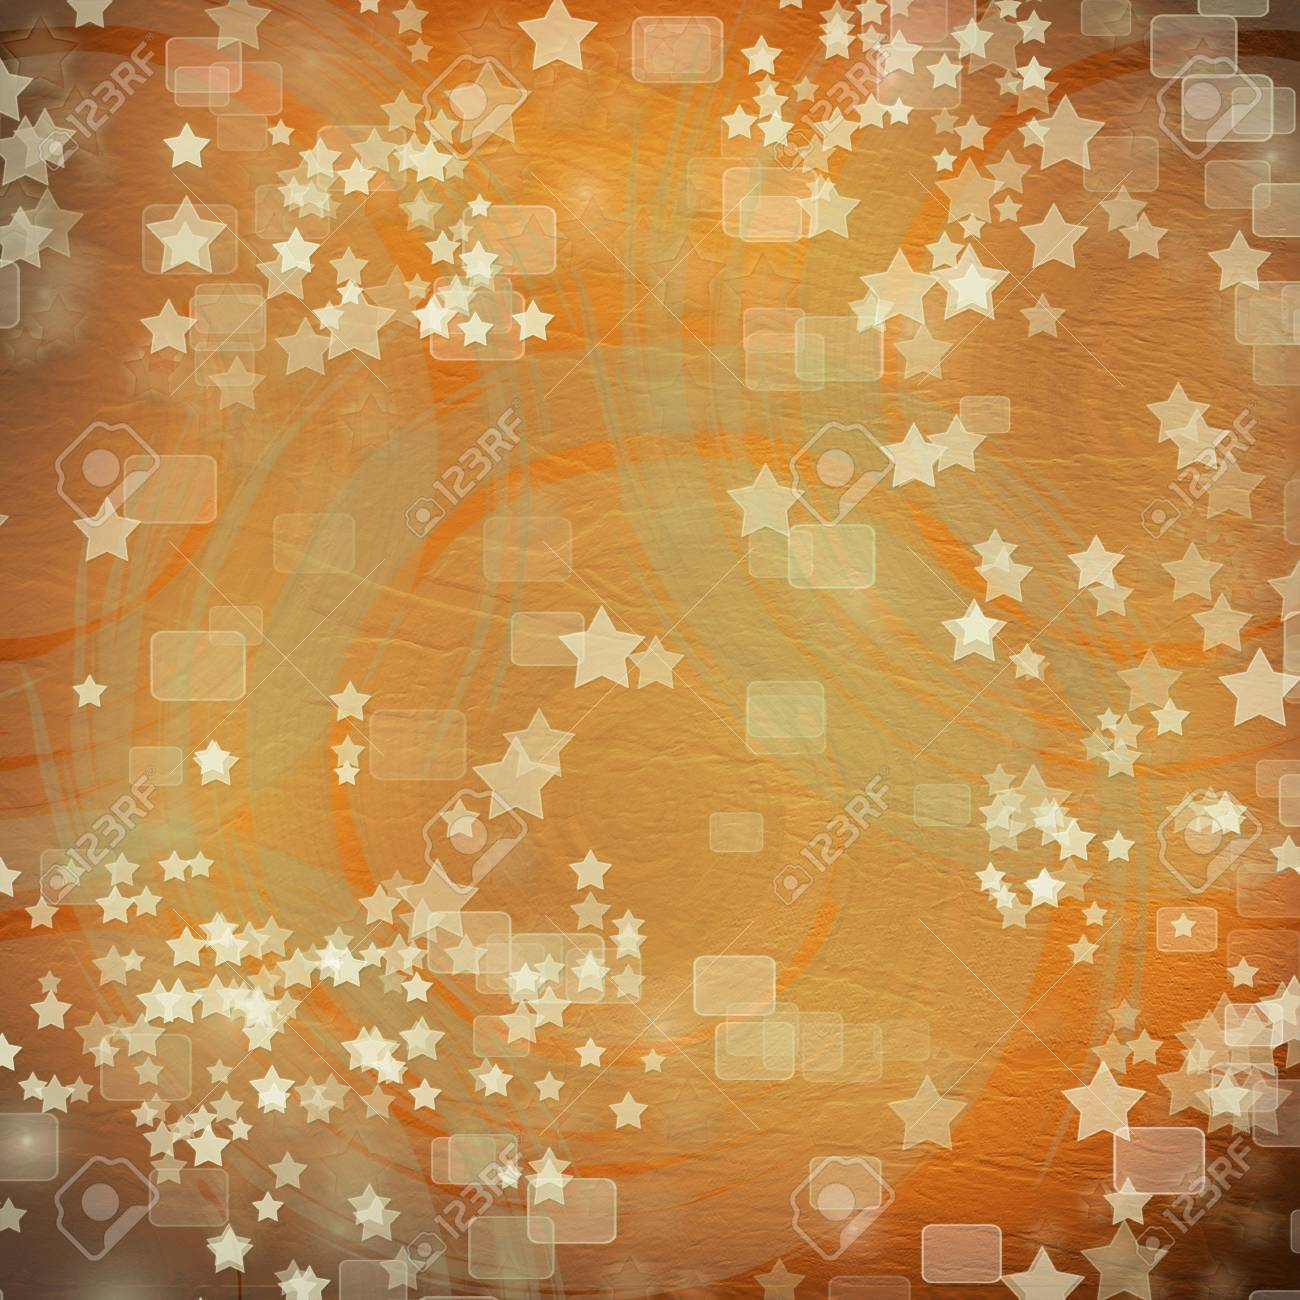 multicoloured backdrop for greetings or invitations with stars Stock Photo - 7679267